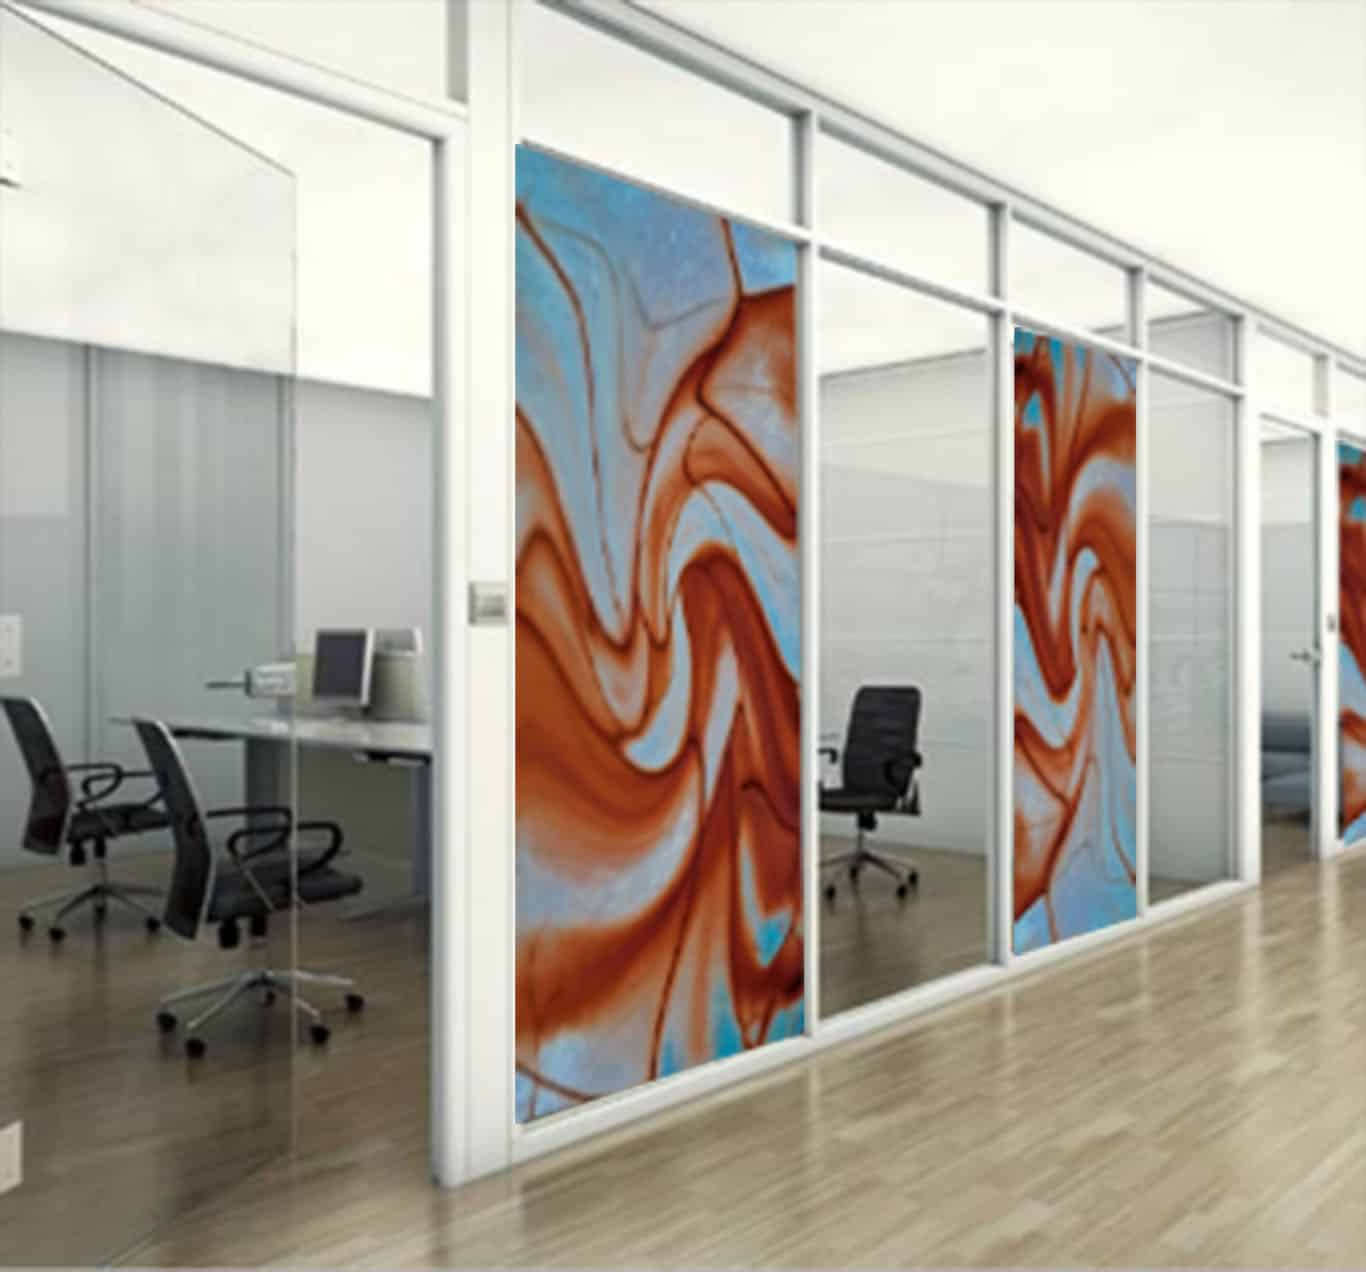 Digital Glass Wall with an abstract image